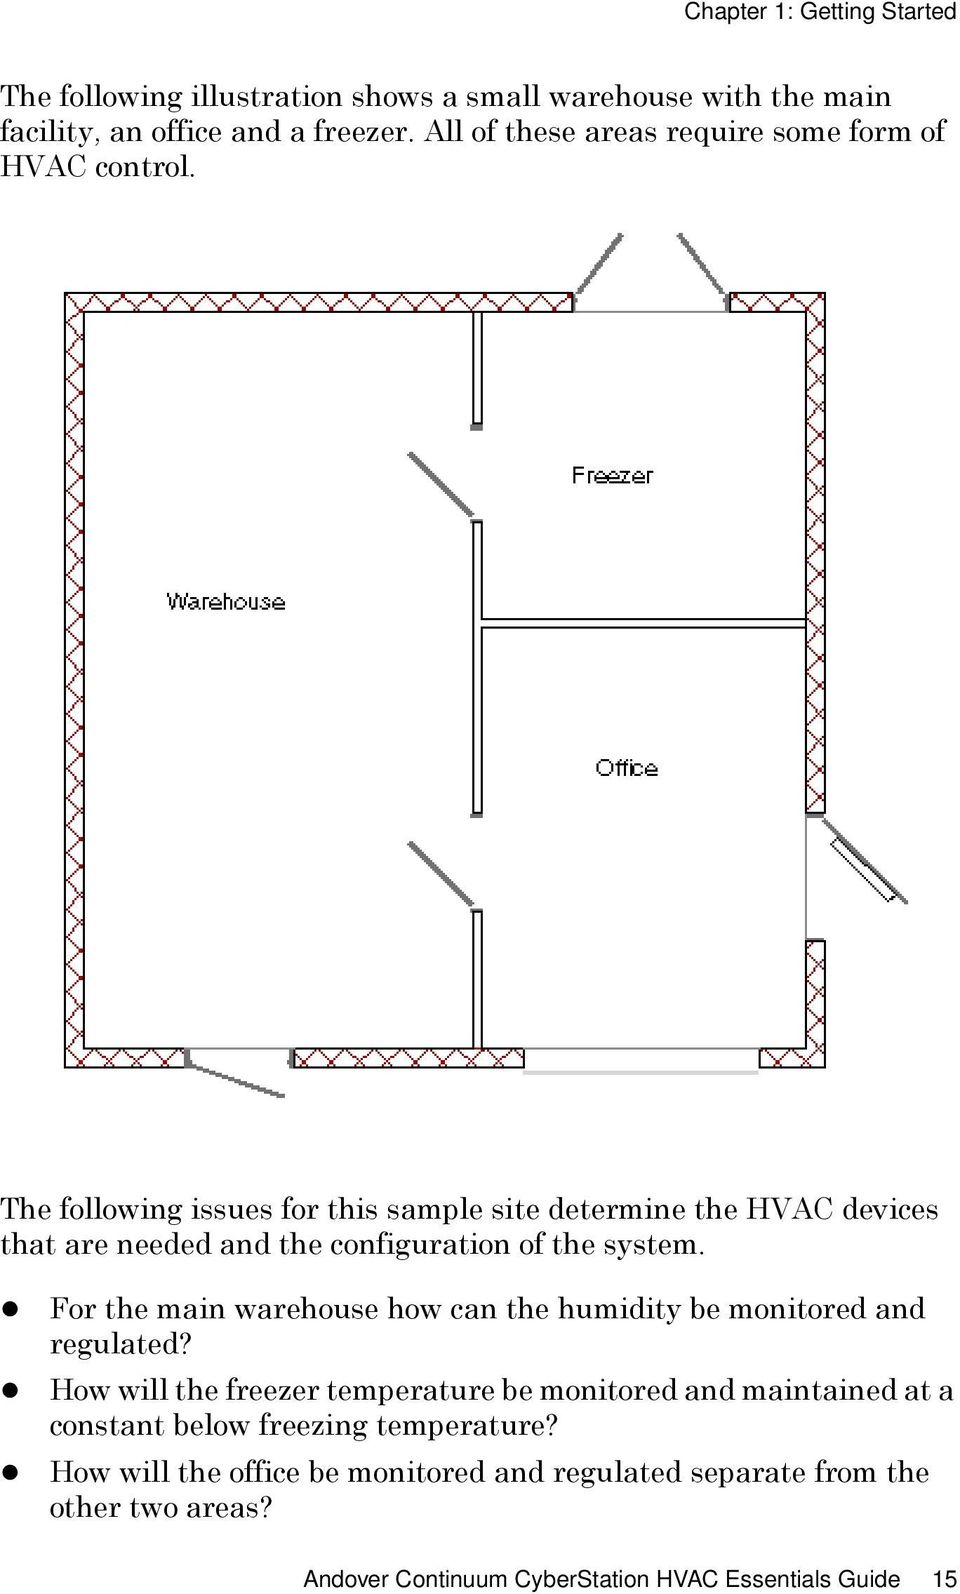 Andover Continuum Cyberstation Hvac Essentials Guide Pdf Drawing Sample The Following Issues For This Site Determine Devices That Are Needed And